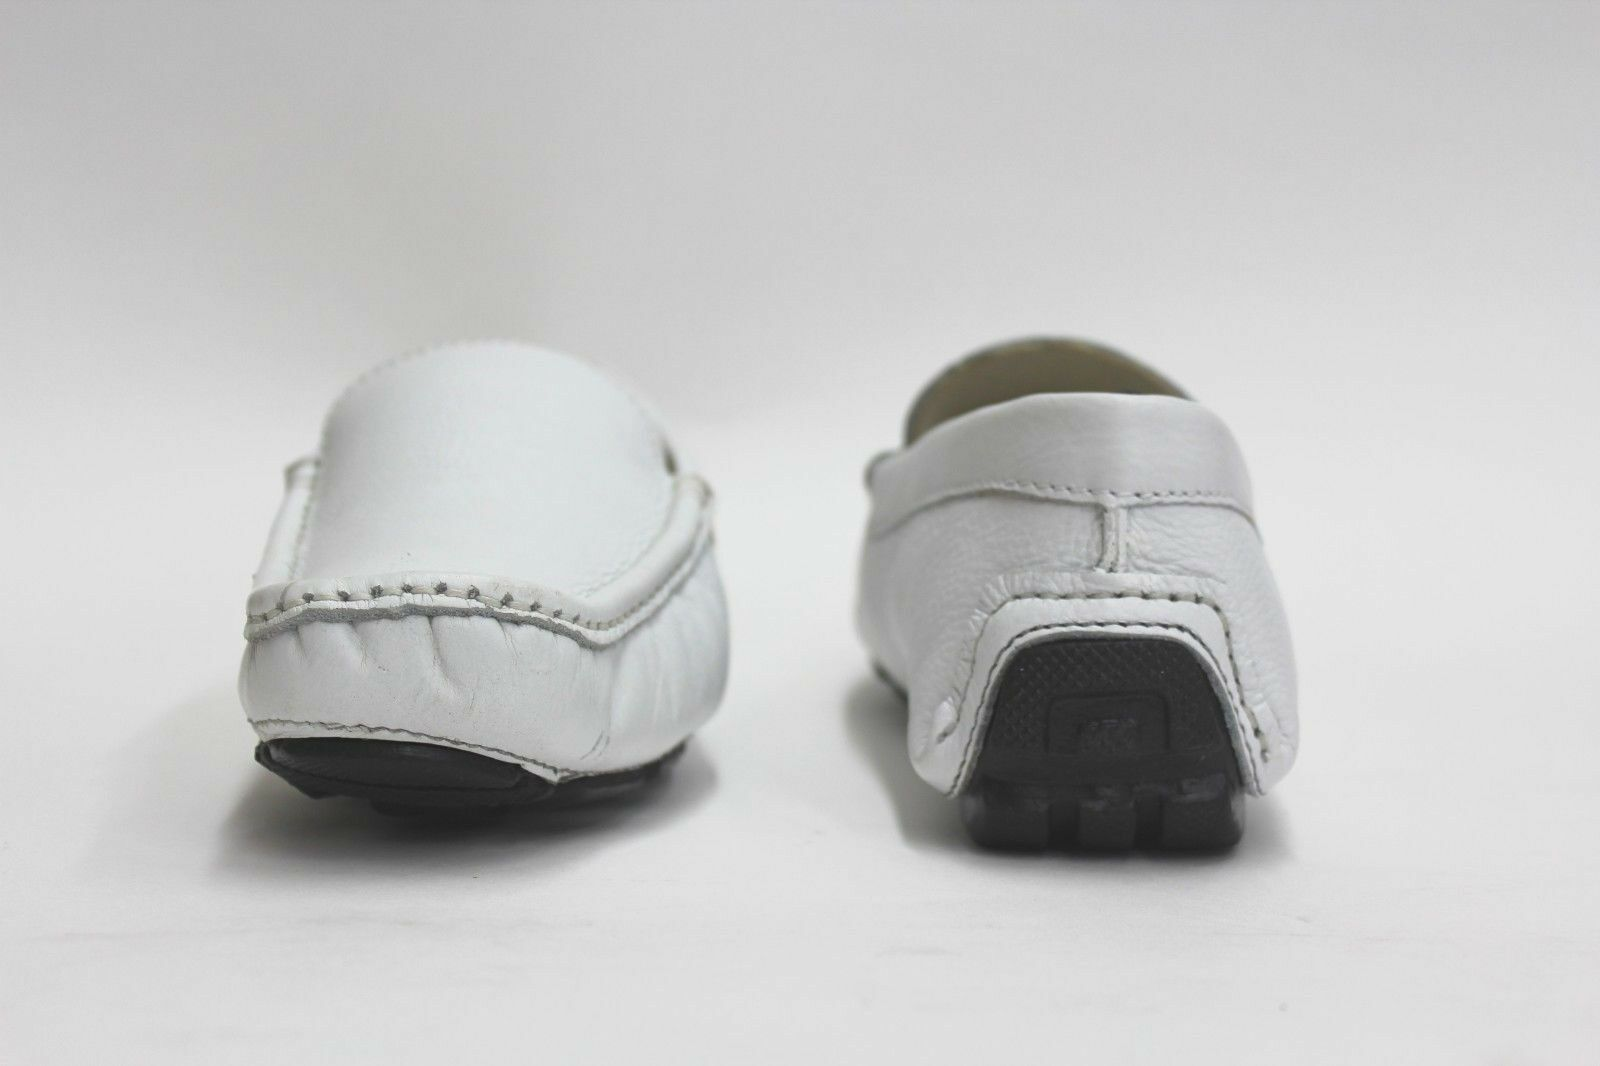 VINTAGE 2012 GIORGIO BRUTINI LE GLOVE LOAFERS 688816 WHITE (msrp: $80) $80) (msrp: 456a5b